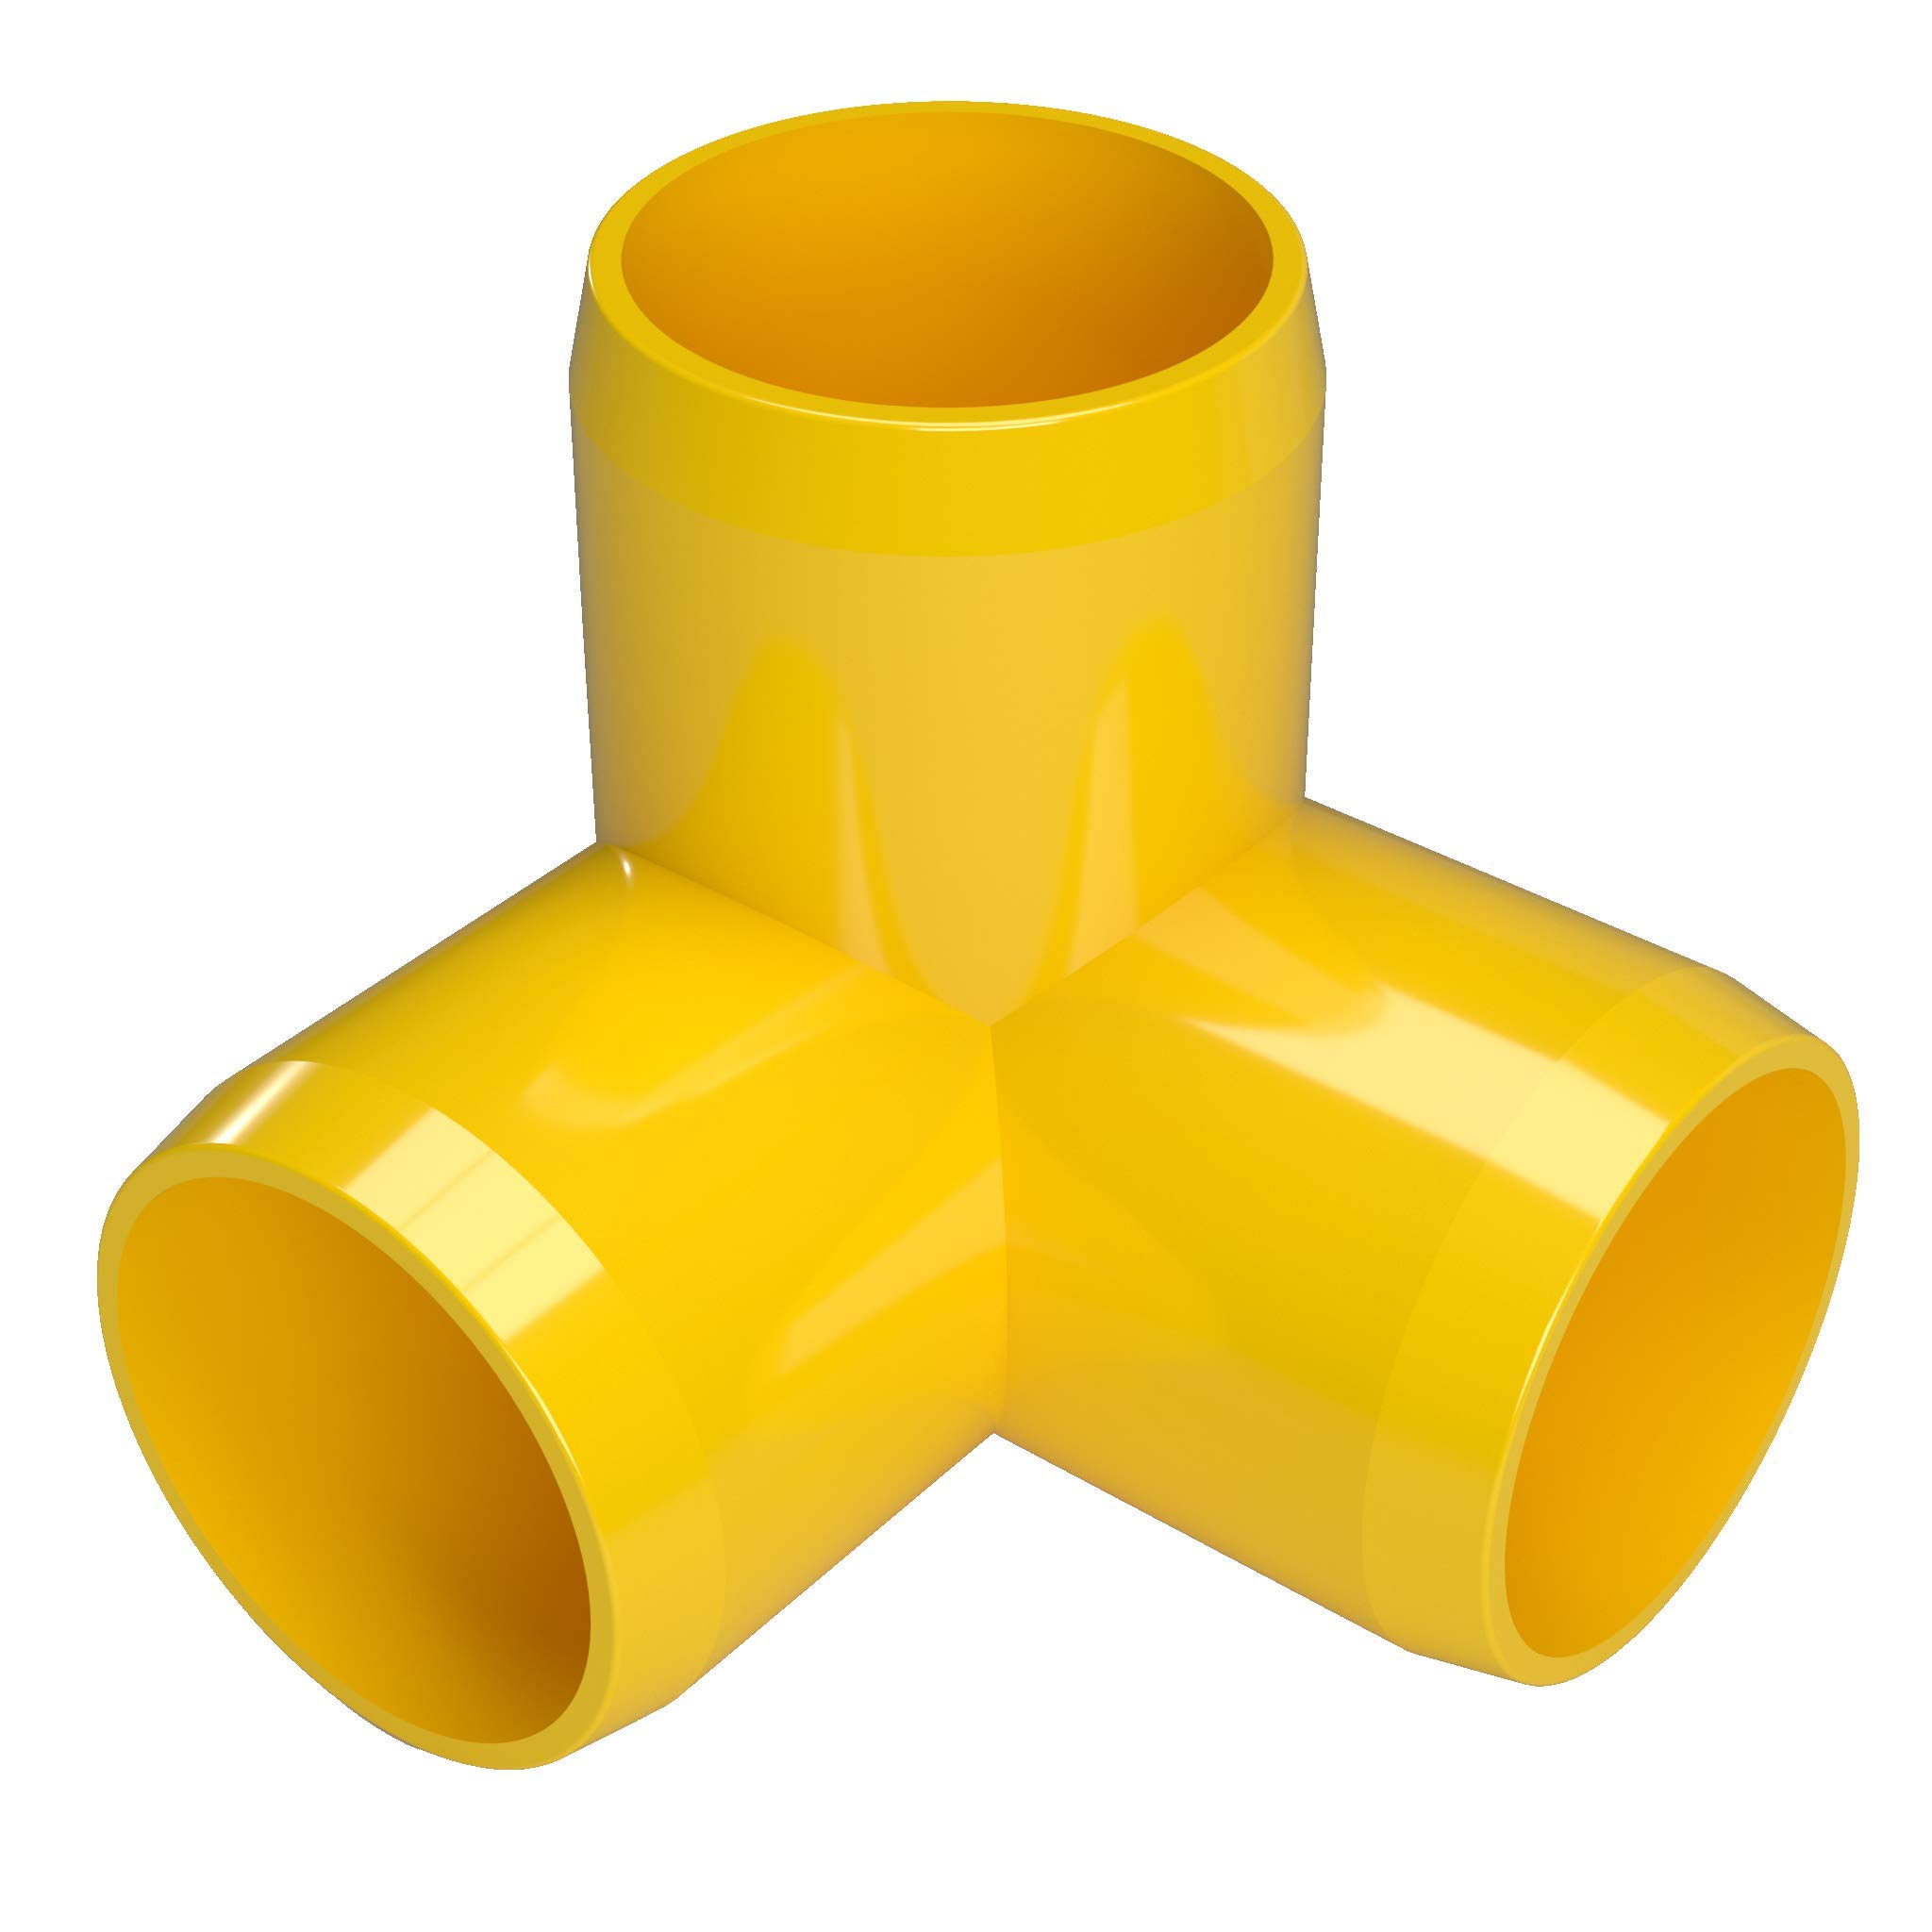 FORMUFIT F1143WE-YE-4 3-Way Elbow PVC Fitting, Furniture Grade, 1-1/4'' Size, Yellow (Pack of 4)